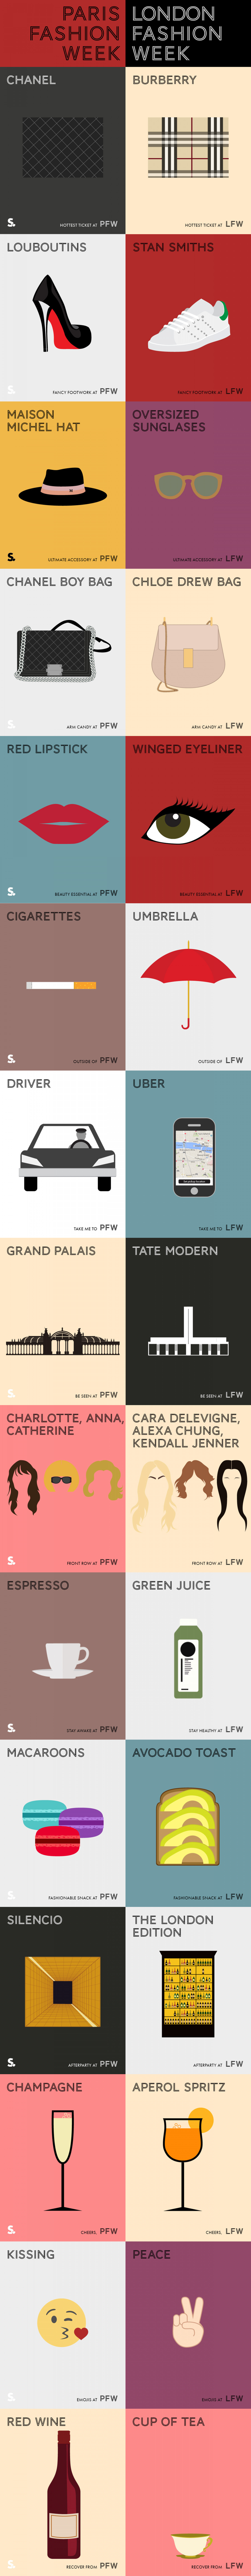 LFW v PFW Infographic